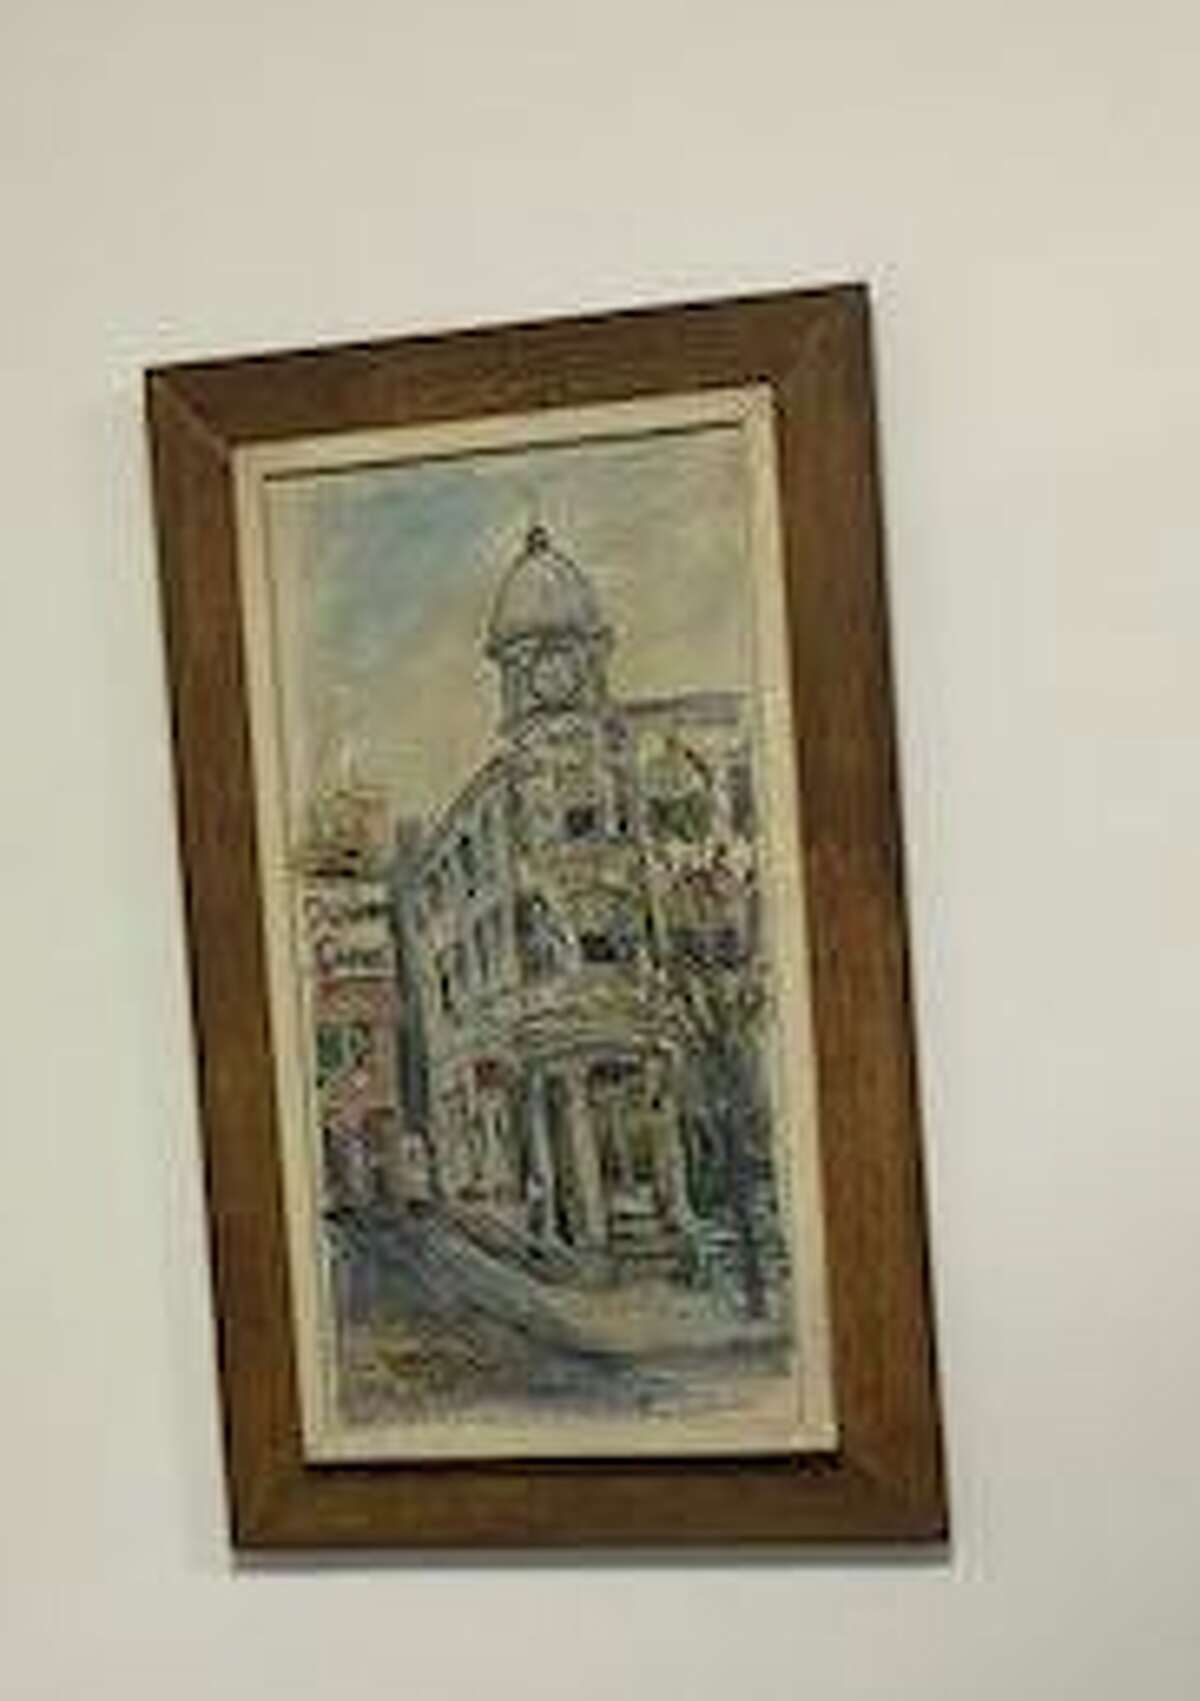 This painting in Editorial Page Editor Jacqueline Smith's office depicts the home of The News-Times on Danbury's Main Street before the newspaper operations expanded to a brick building at 333 Main St. Two years ago, offices moved to 345 Main St.